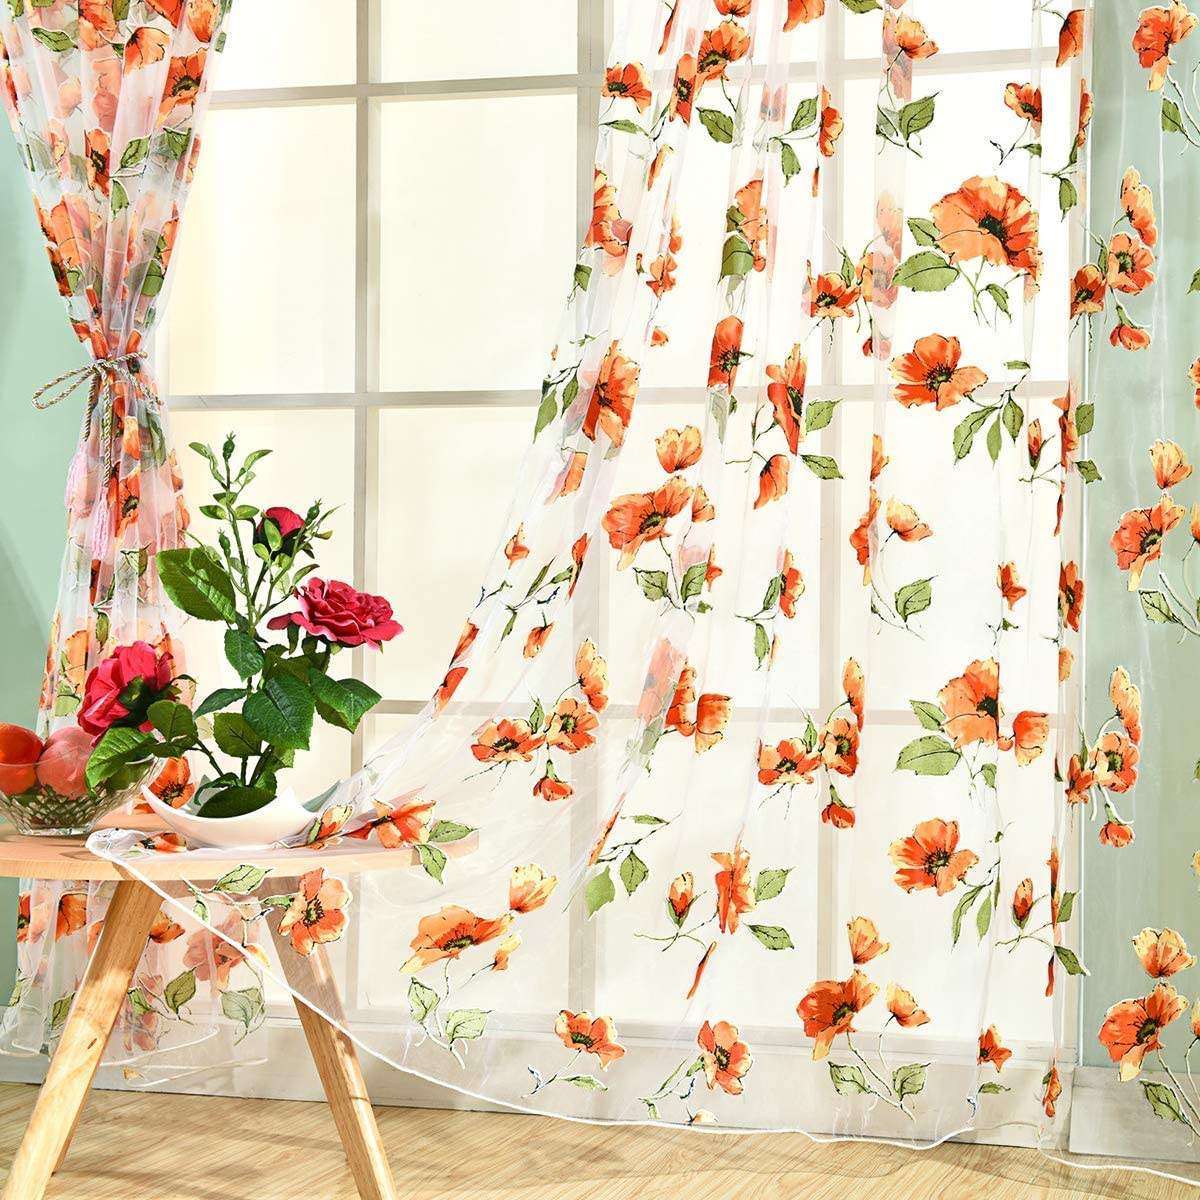 Broshan Sheer Curtains Red Flowers Spring Natural Floral Printed Voile Curtain Panels For Bedroom Living Room Shade Rod Pocket 1 Set Of 2 Kitchen Dining